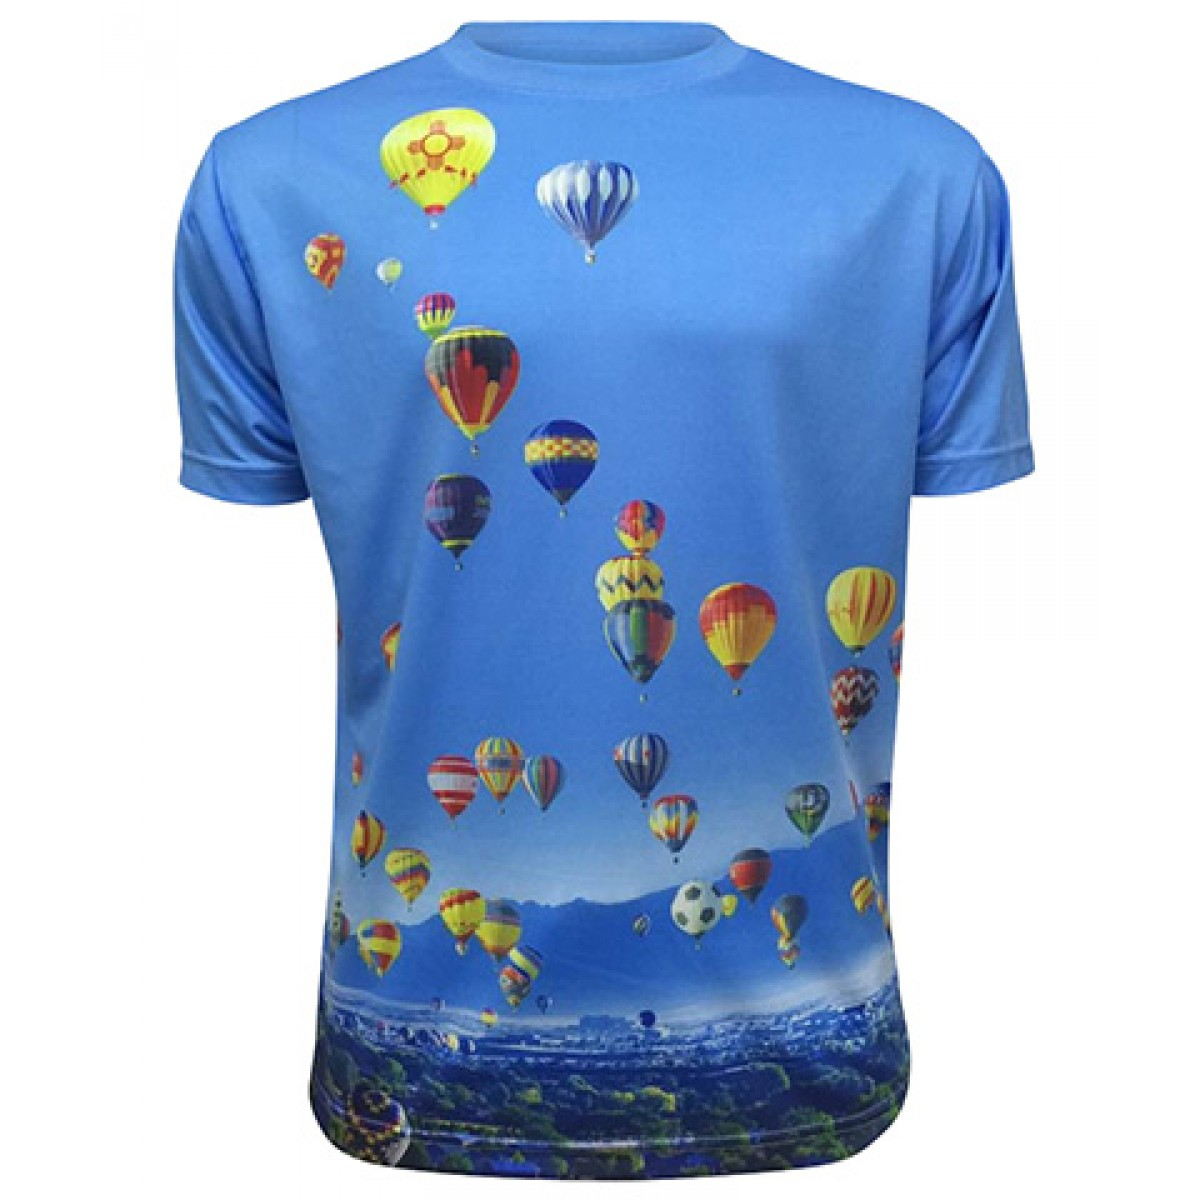 AIBF Sublimated Short Sleeve-Blue-XL